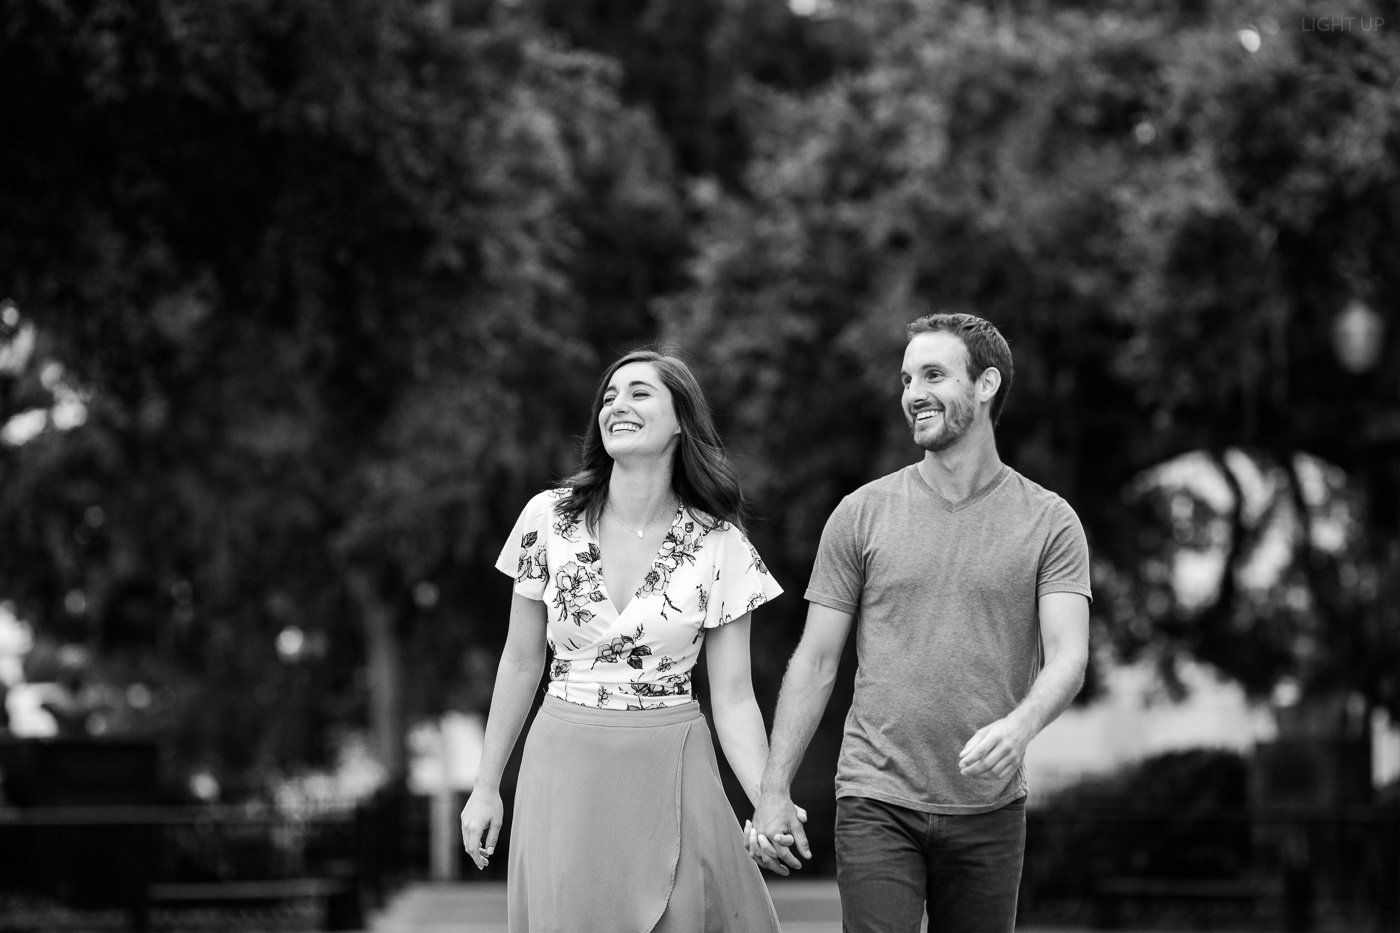 Lake-Eola-Engagement-4.jpg